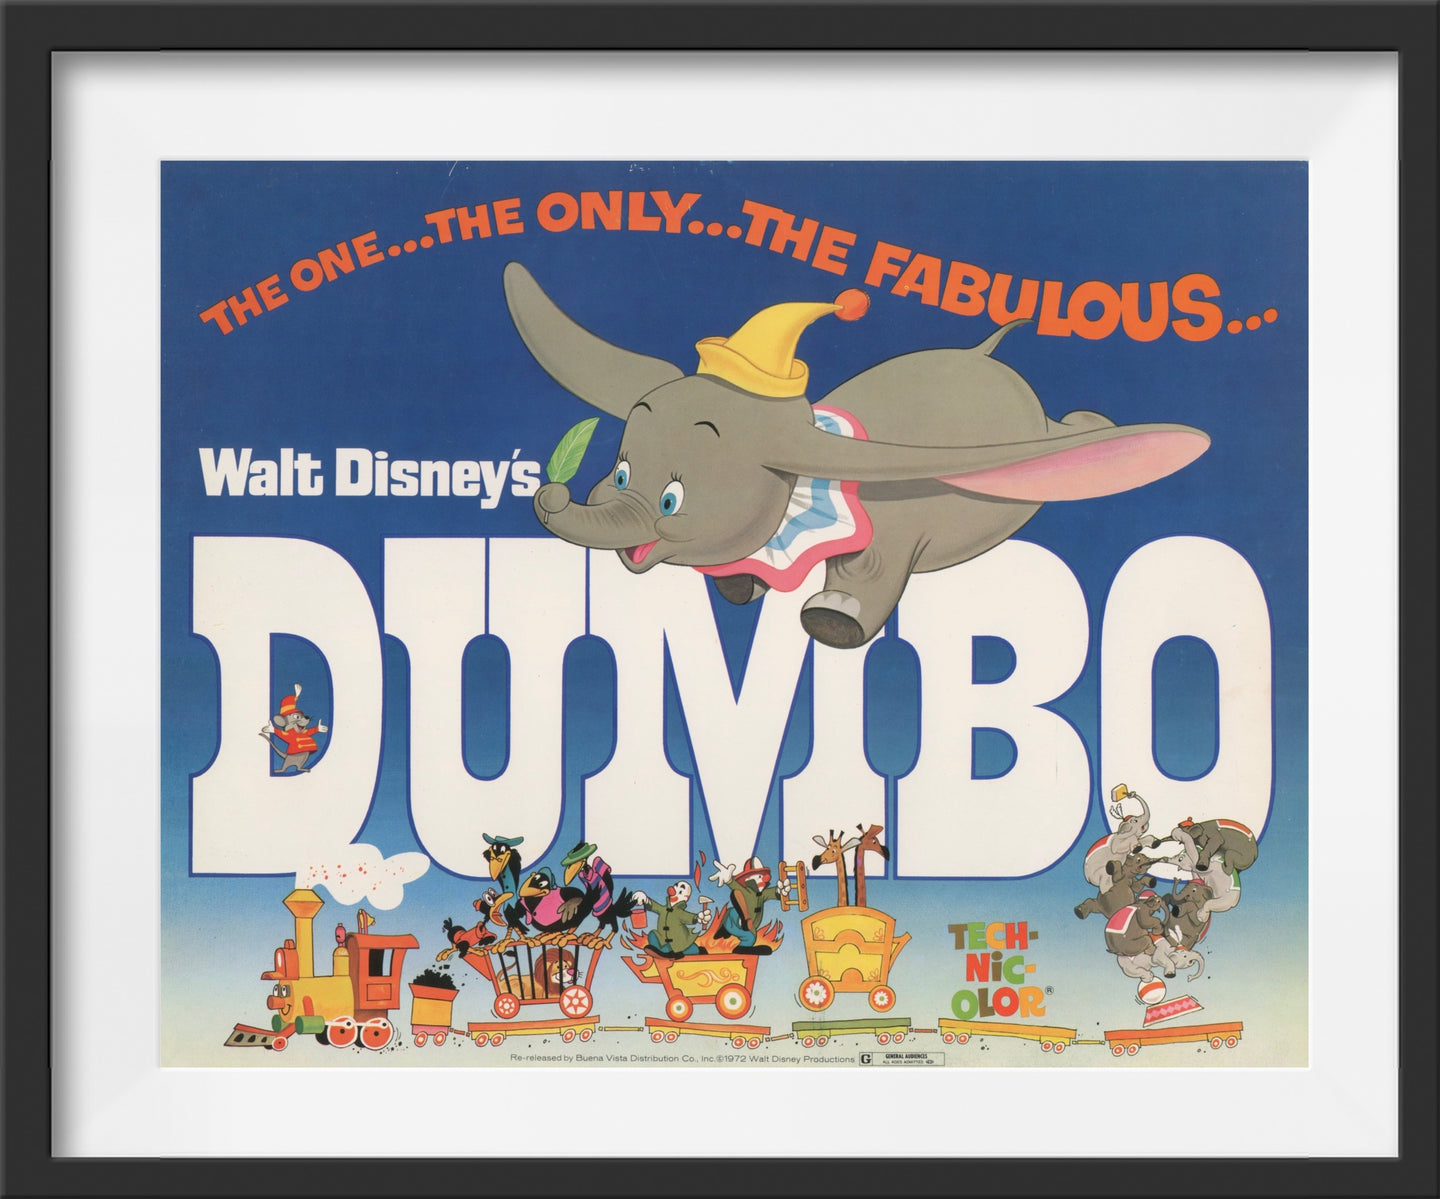 An original lobby card for the Disney film Dumbo